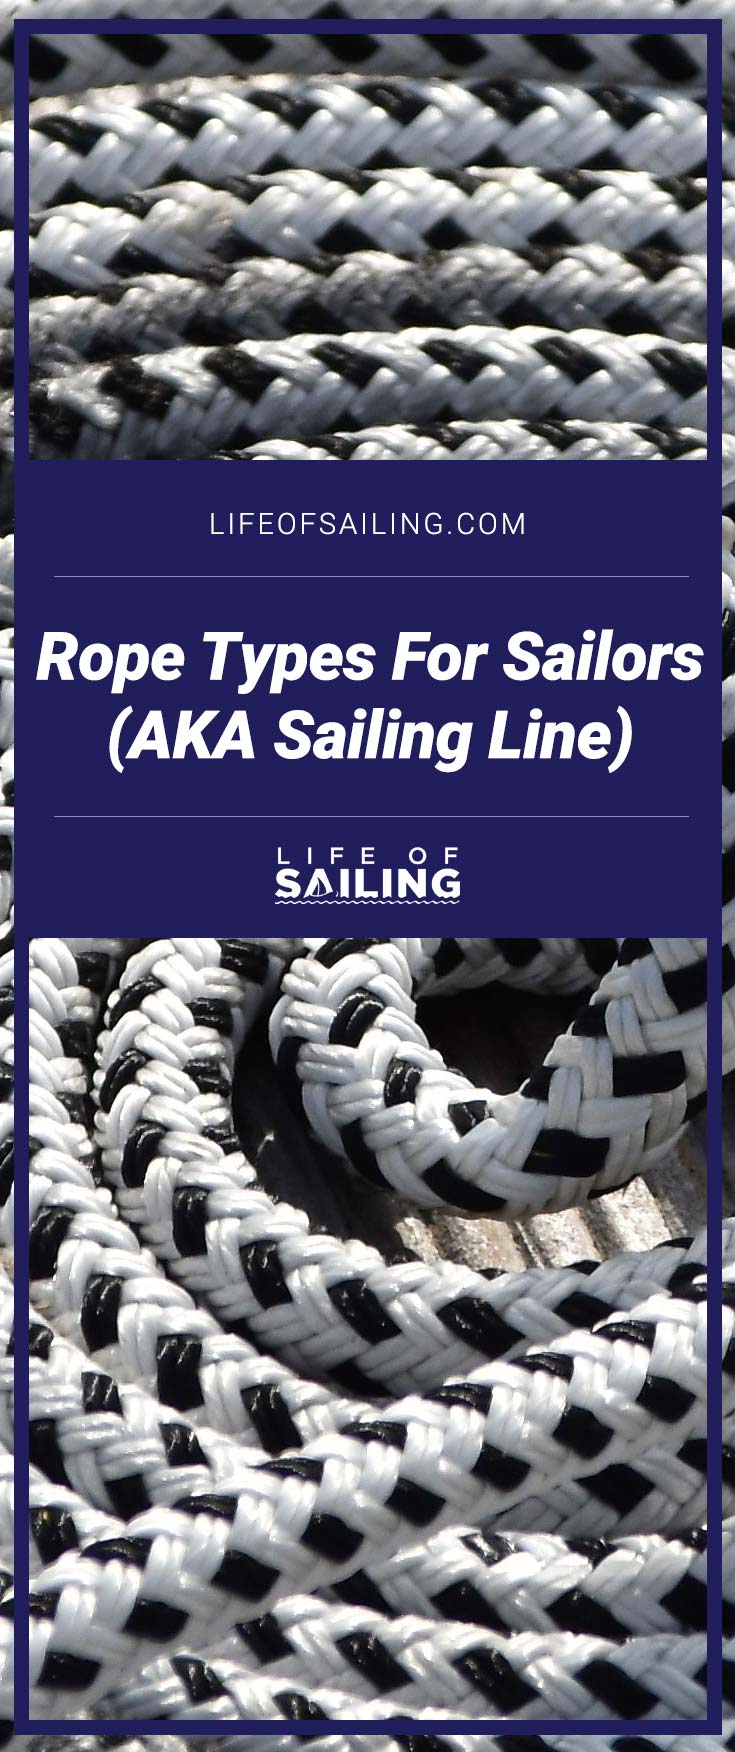 Rope Types For Sailors (AKA Sailing Line)